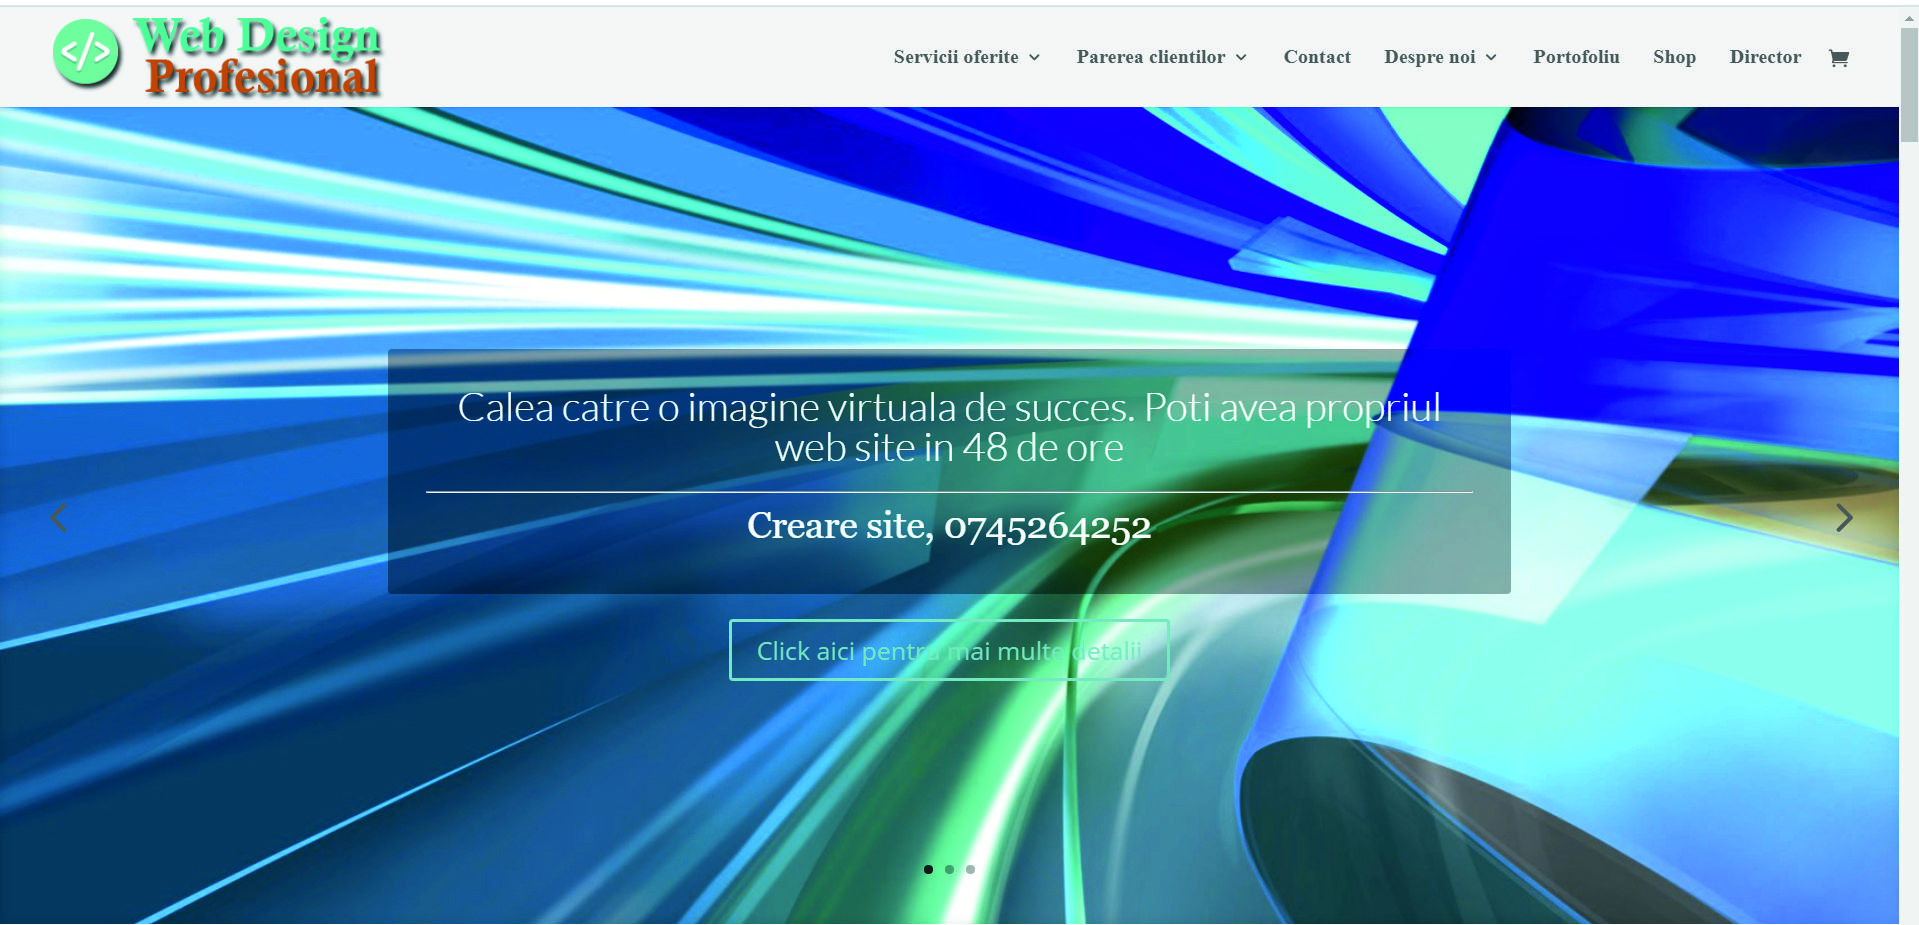 creare site responsitive